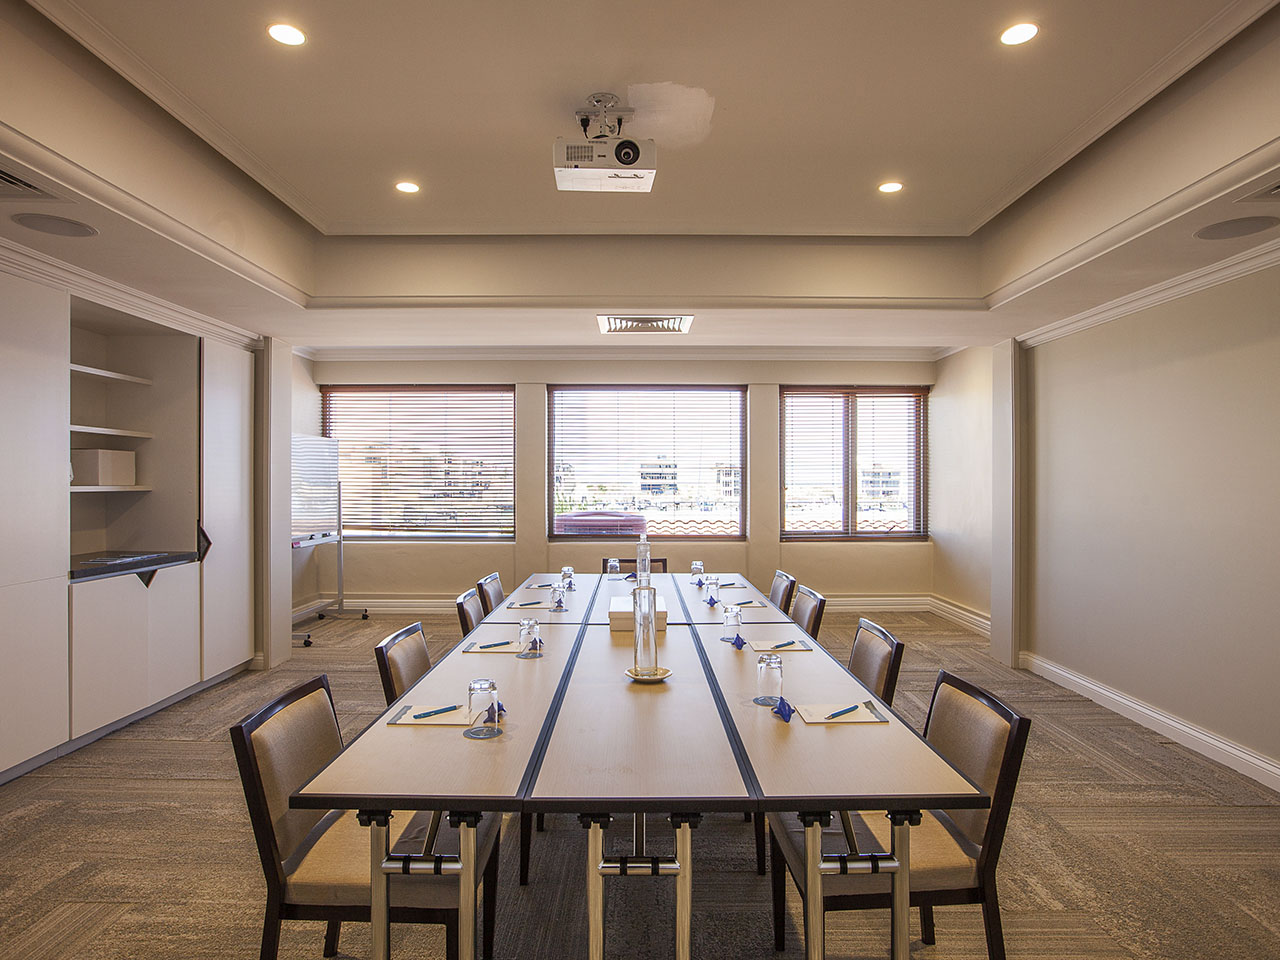 A Meeting Room With Open Windows And A Long Table.